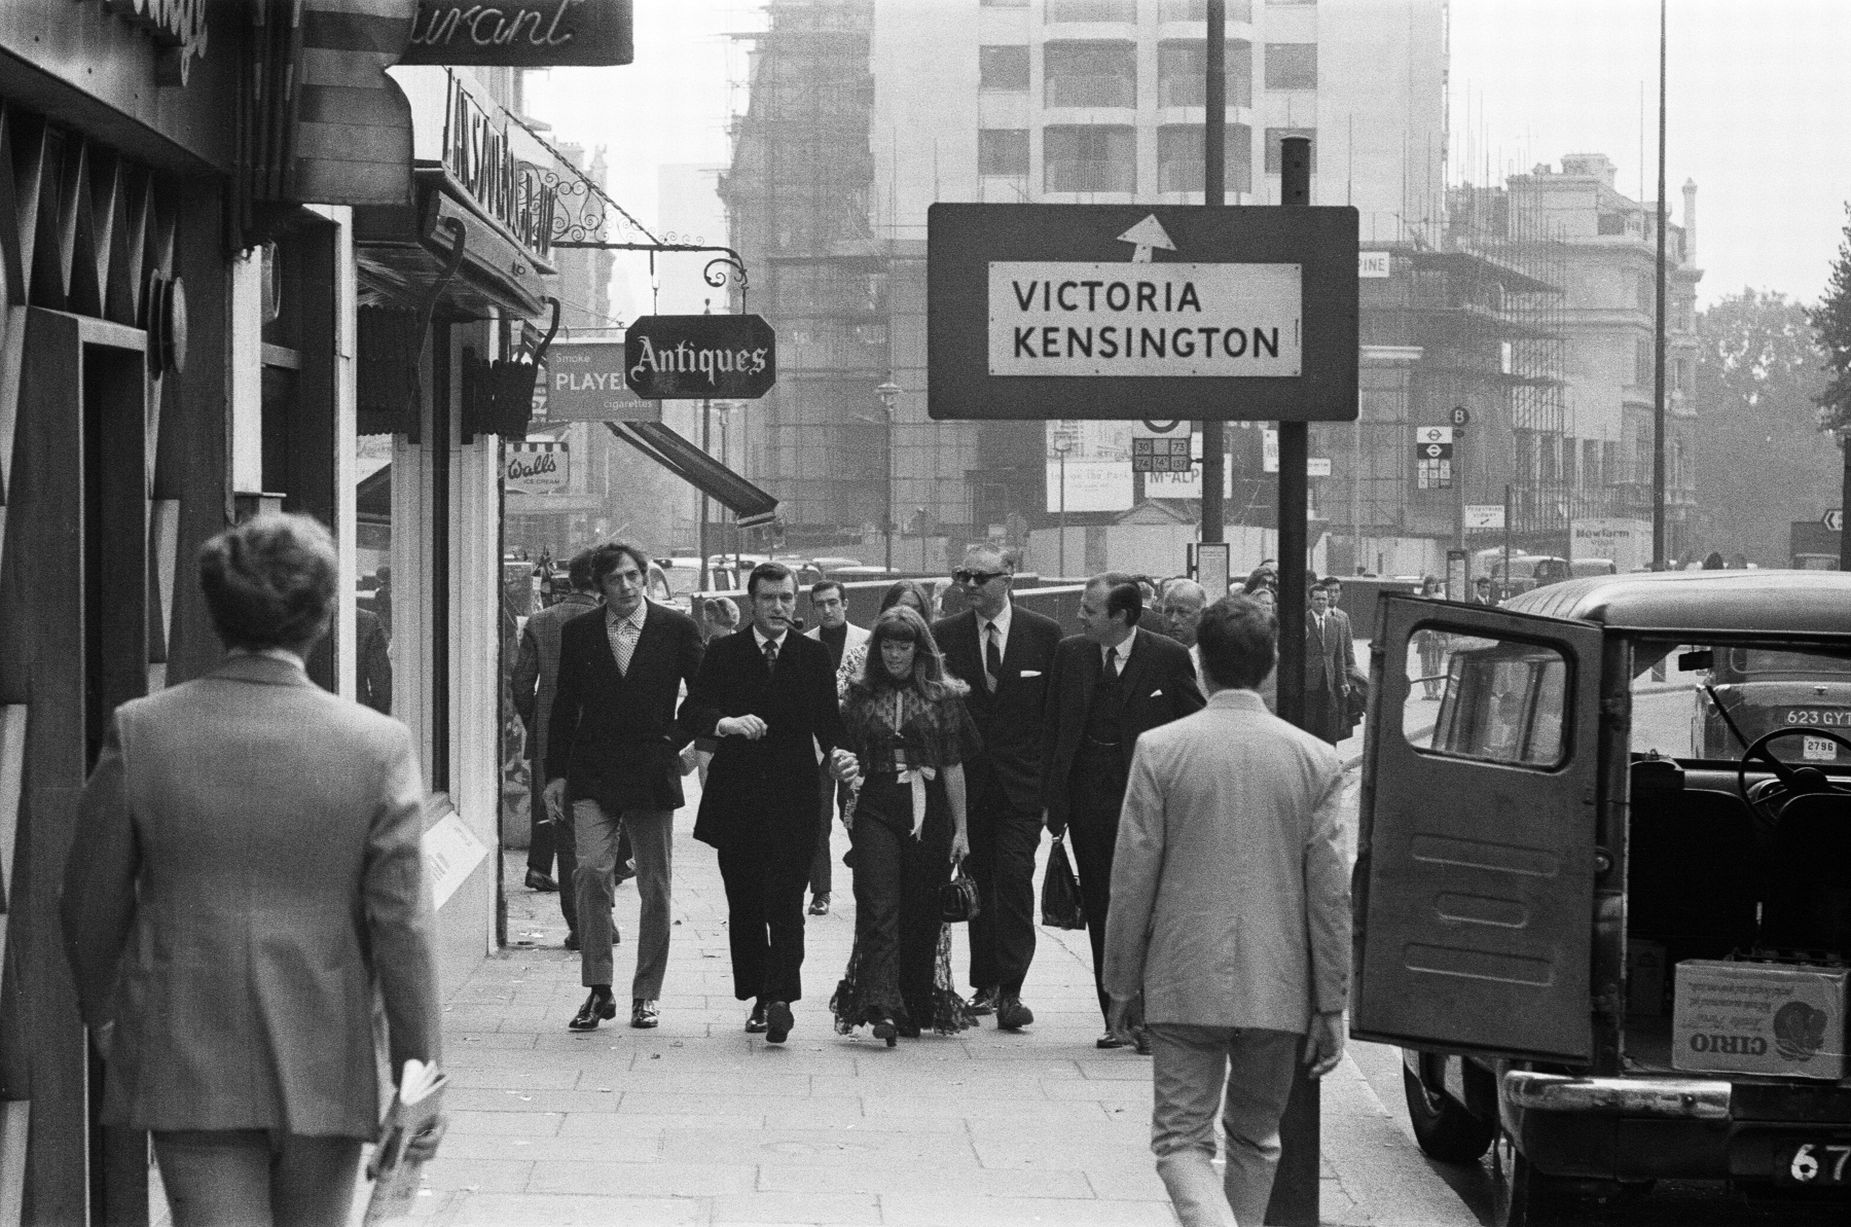 Everette hatcher iii the daily hatch page 10 5th september 1969 pictured as they arrive at the playboy club hugh hefner with his girlfriend barbara benton walking along park lane fandeluxe Gallery